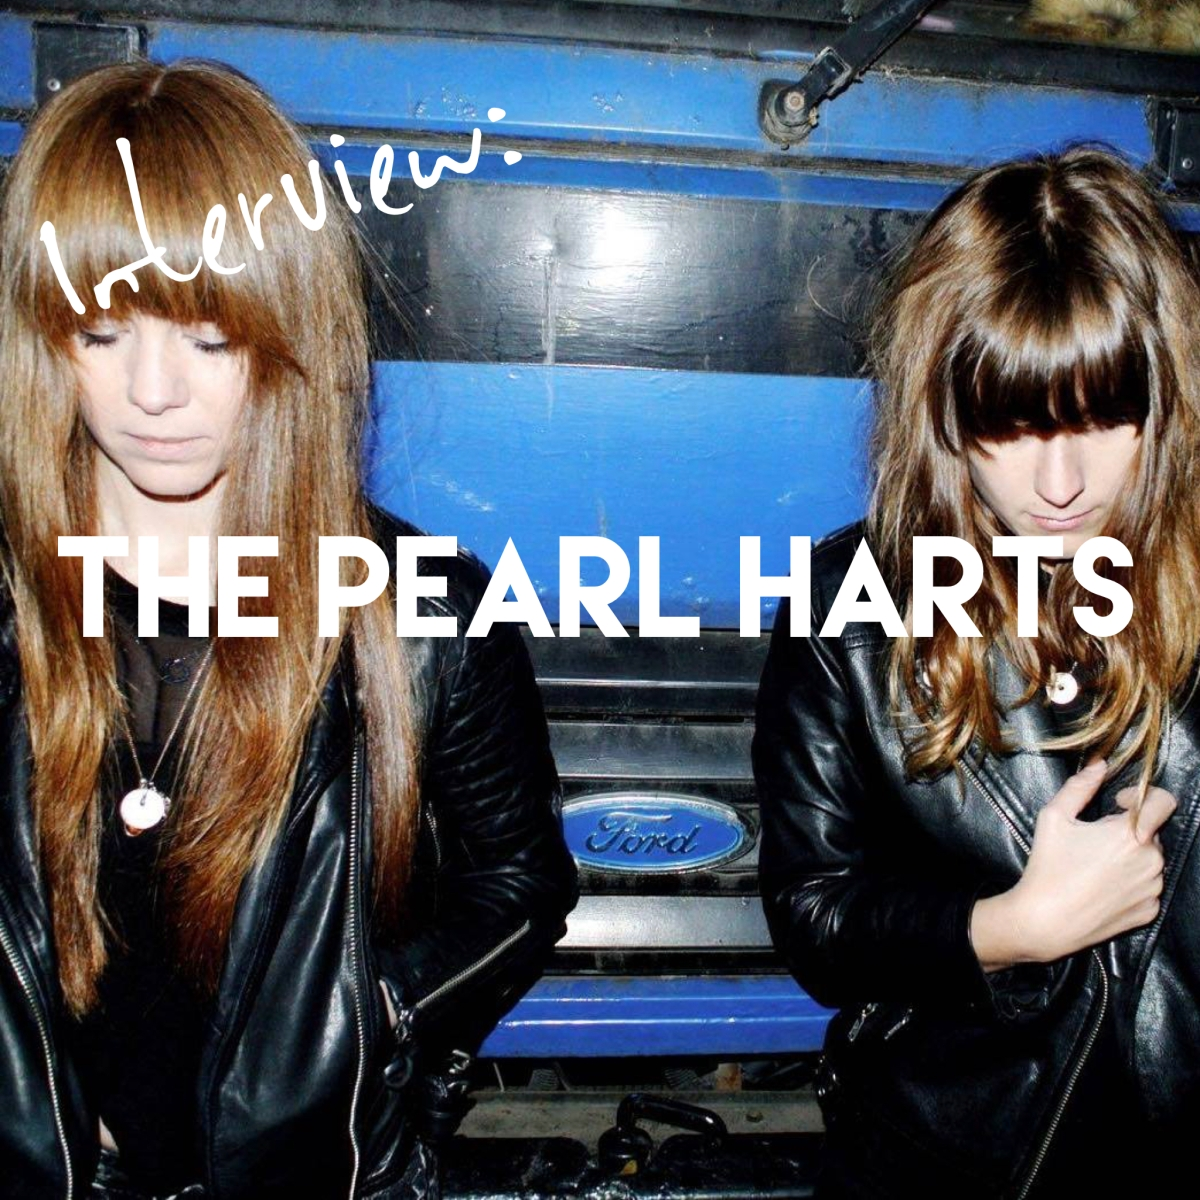 Interview: Raw and Gritty - The Pearl Harts